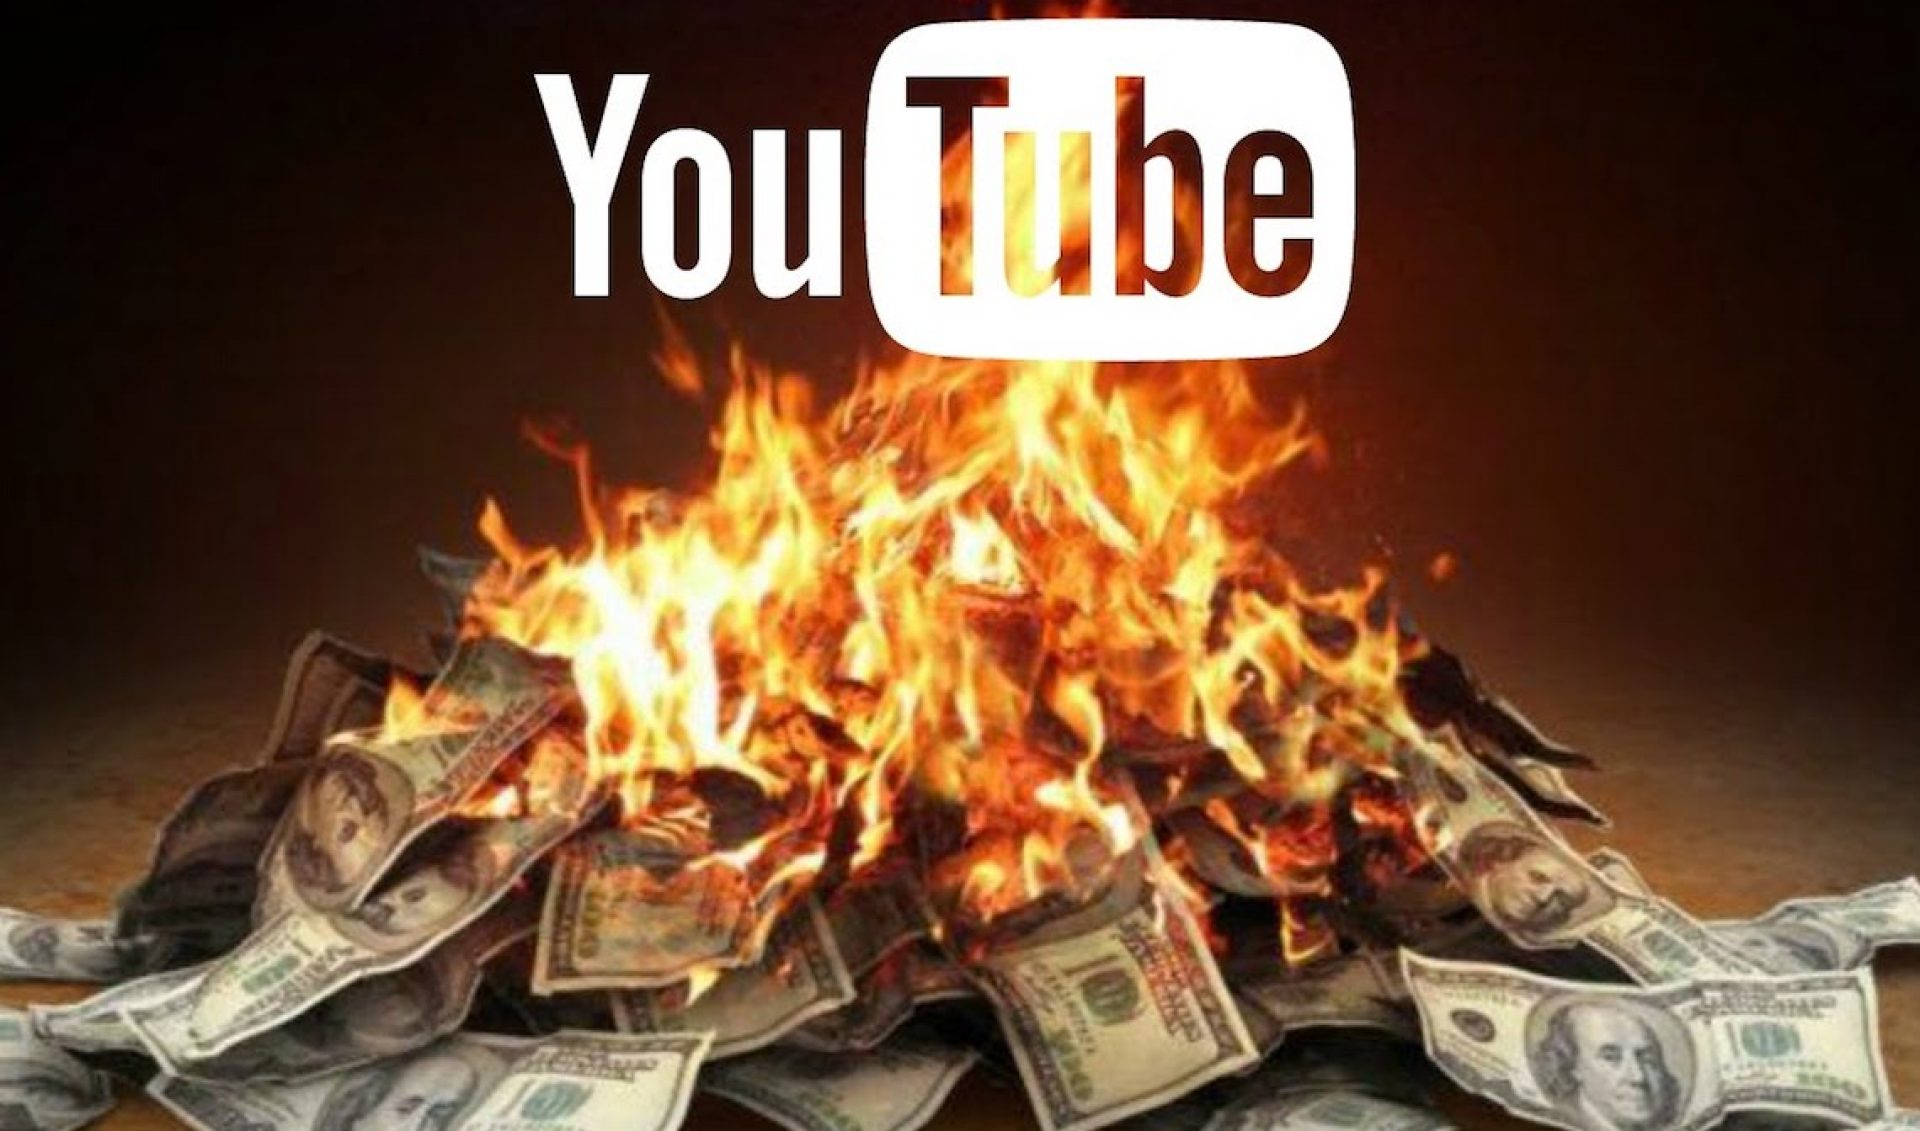 The #Adpocalypse Is Here To Stay